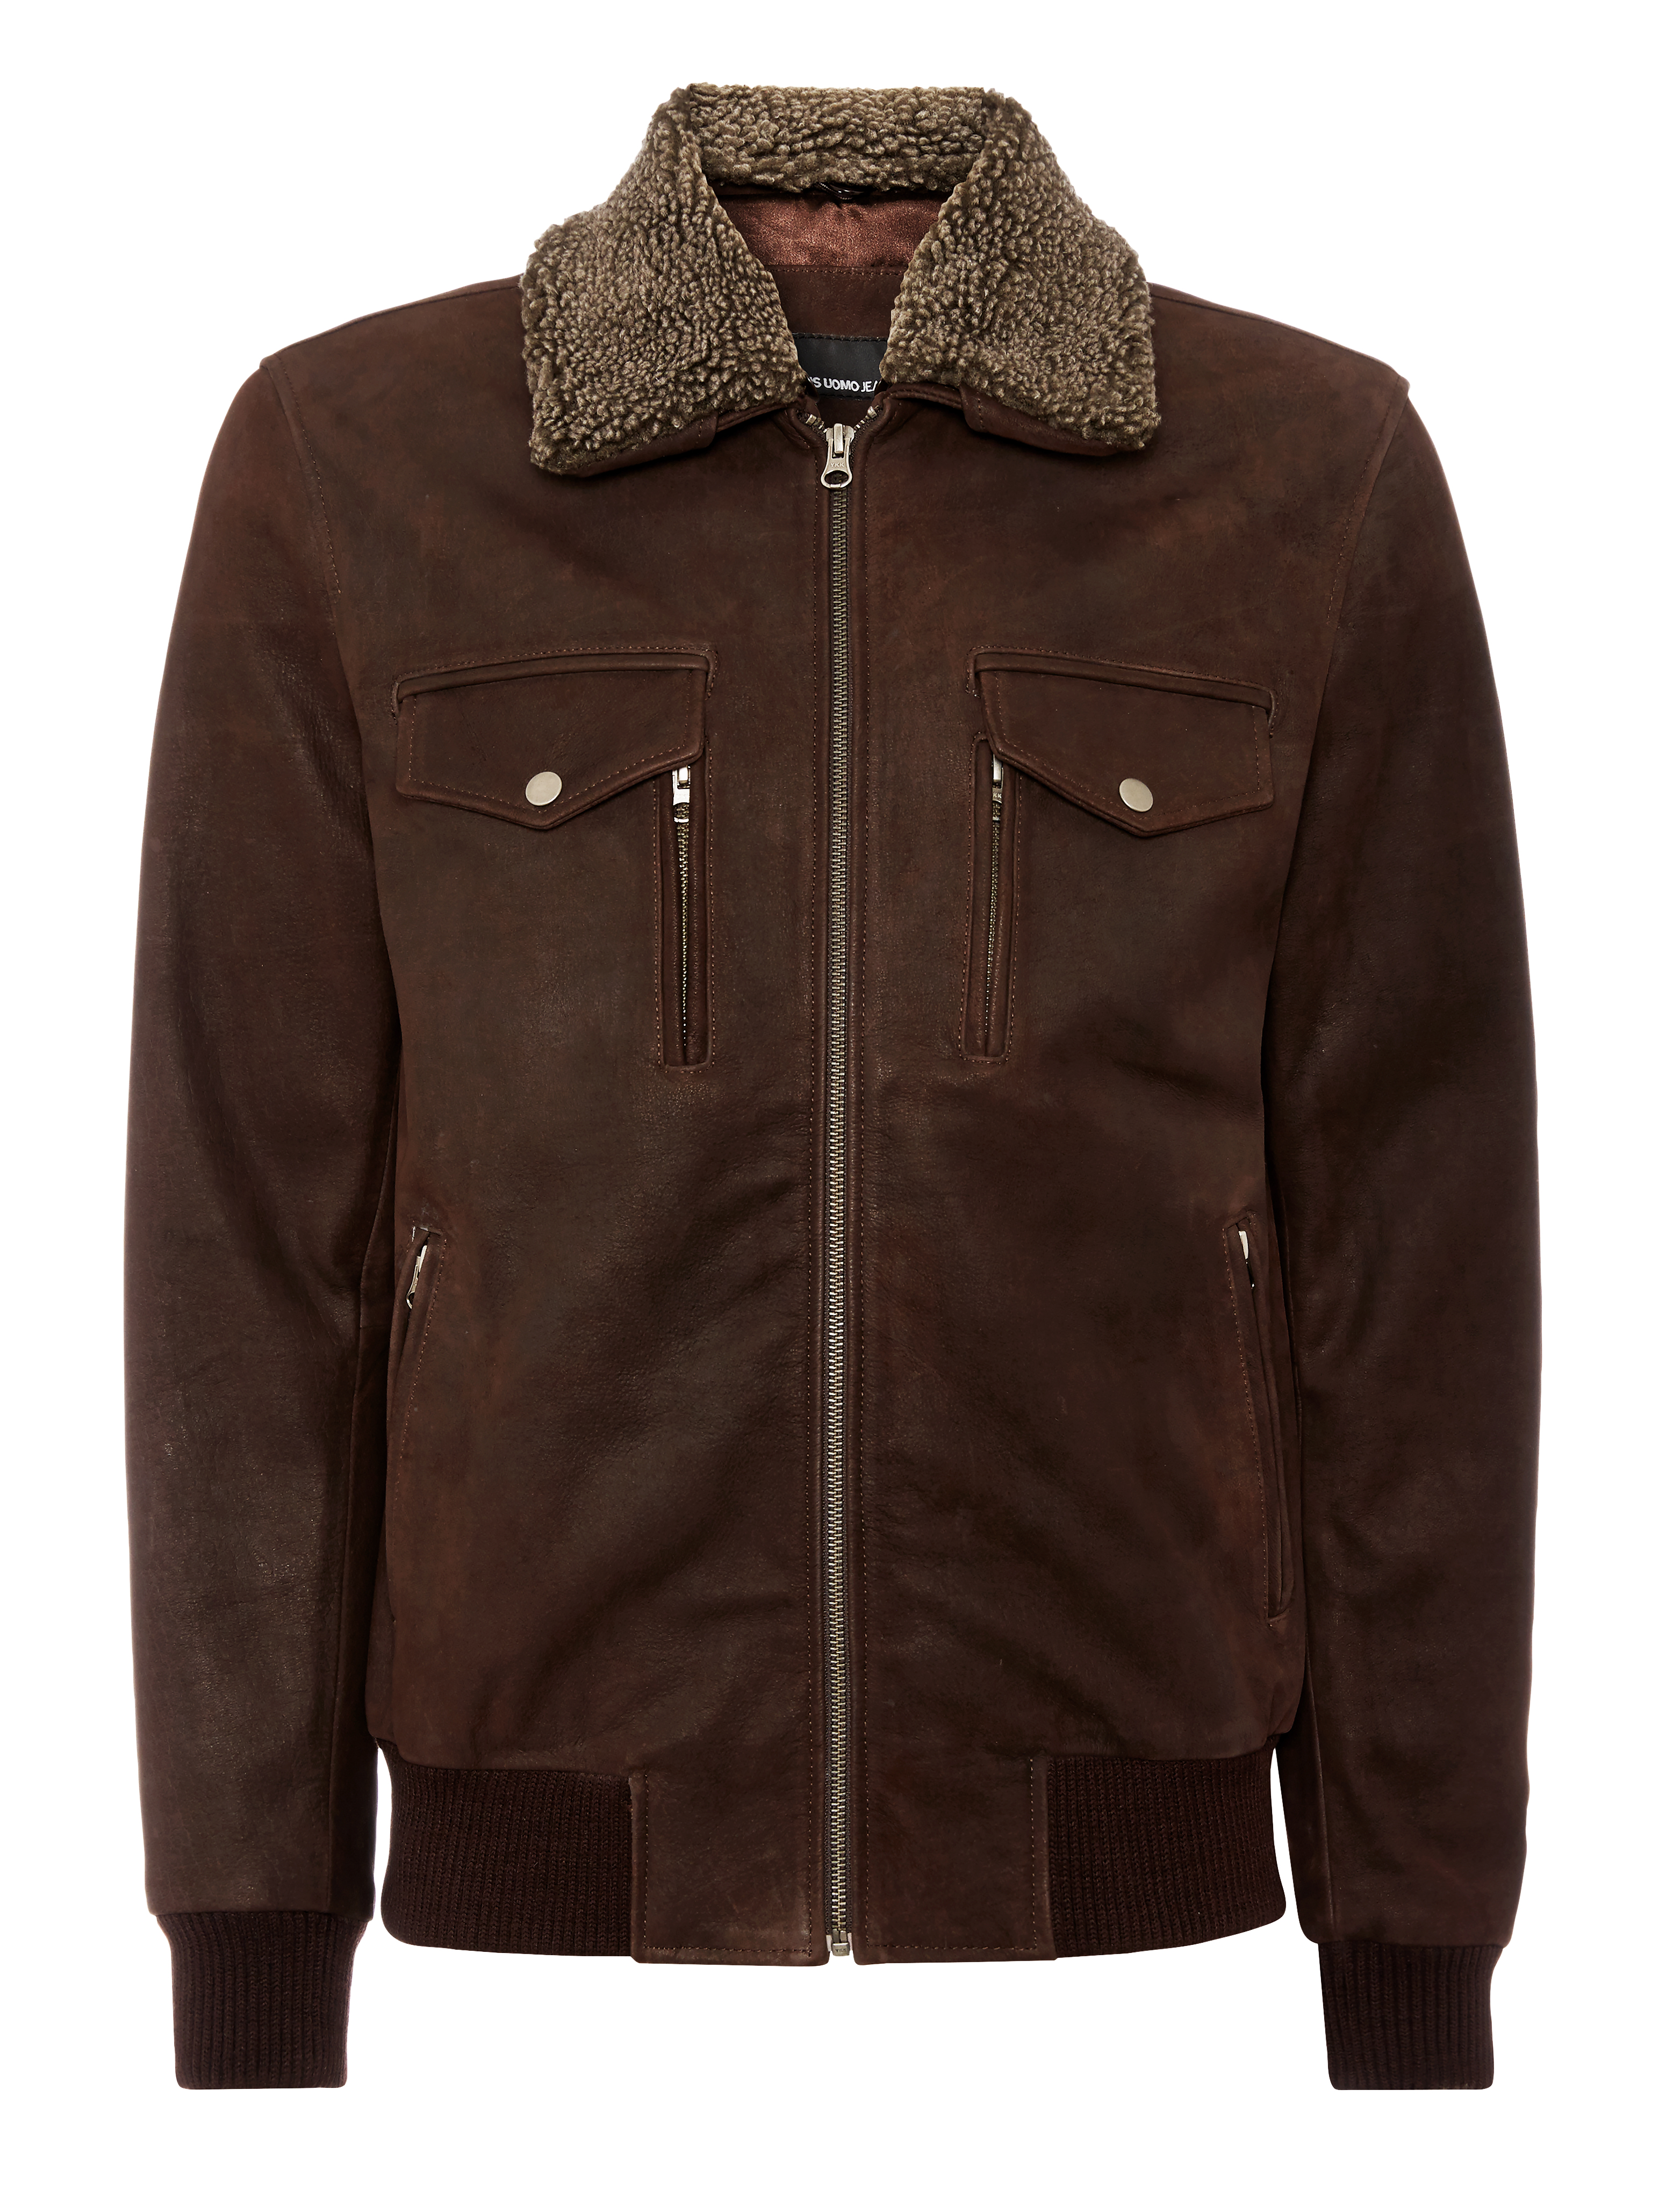 Tapered fit leather flight jacket.